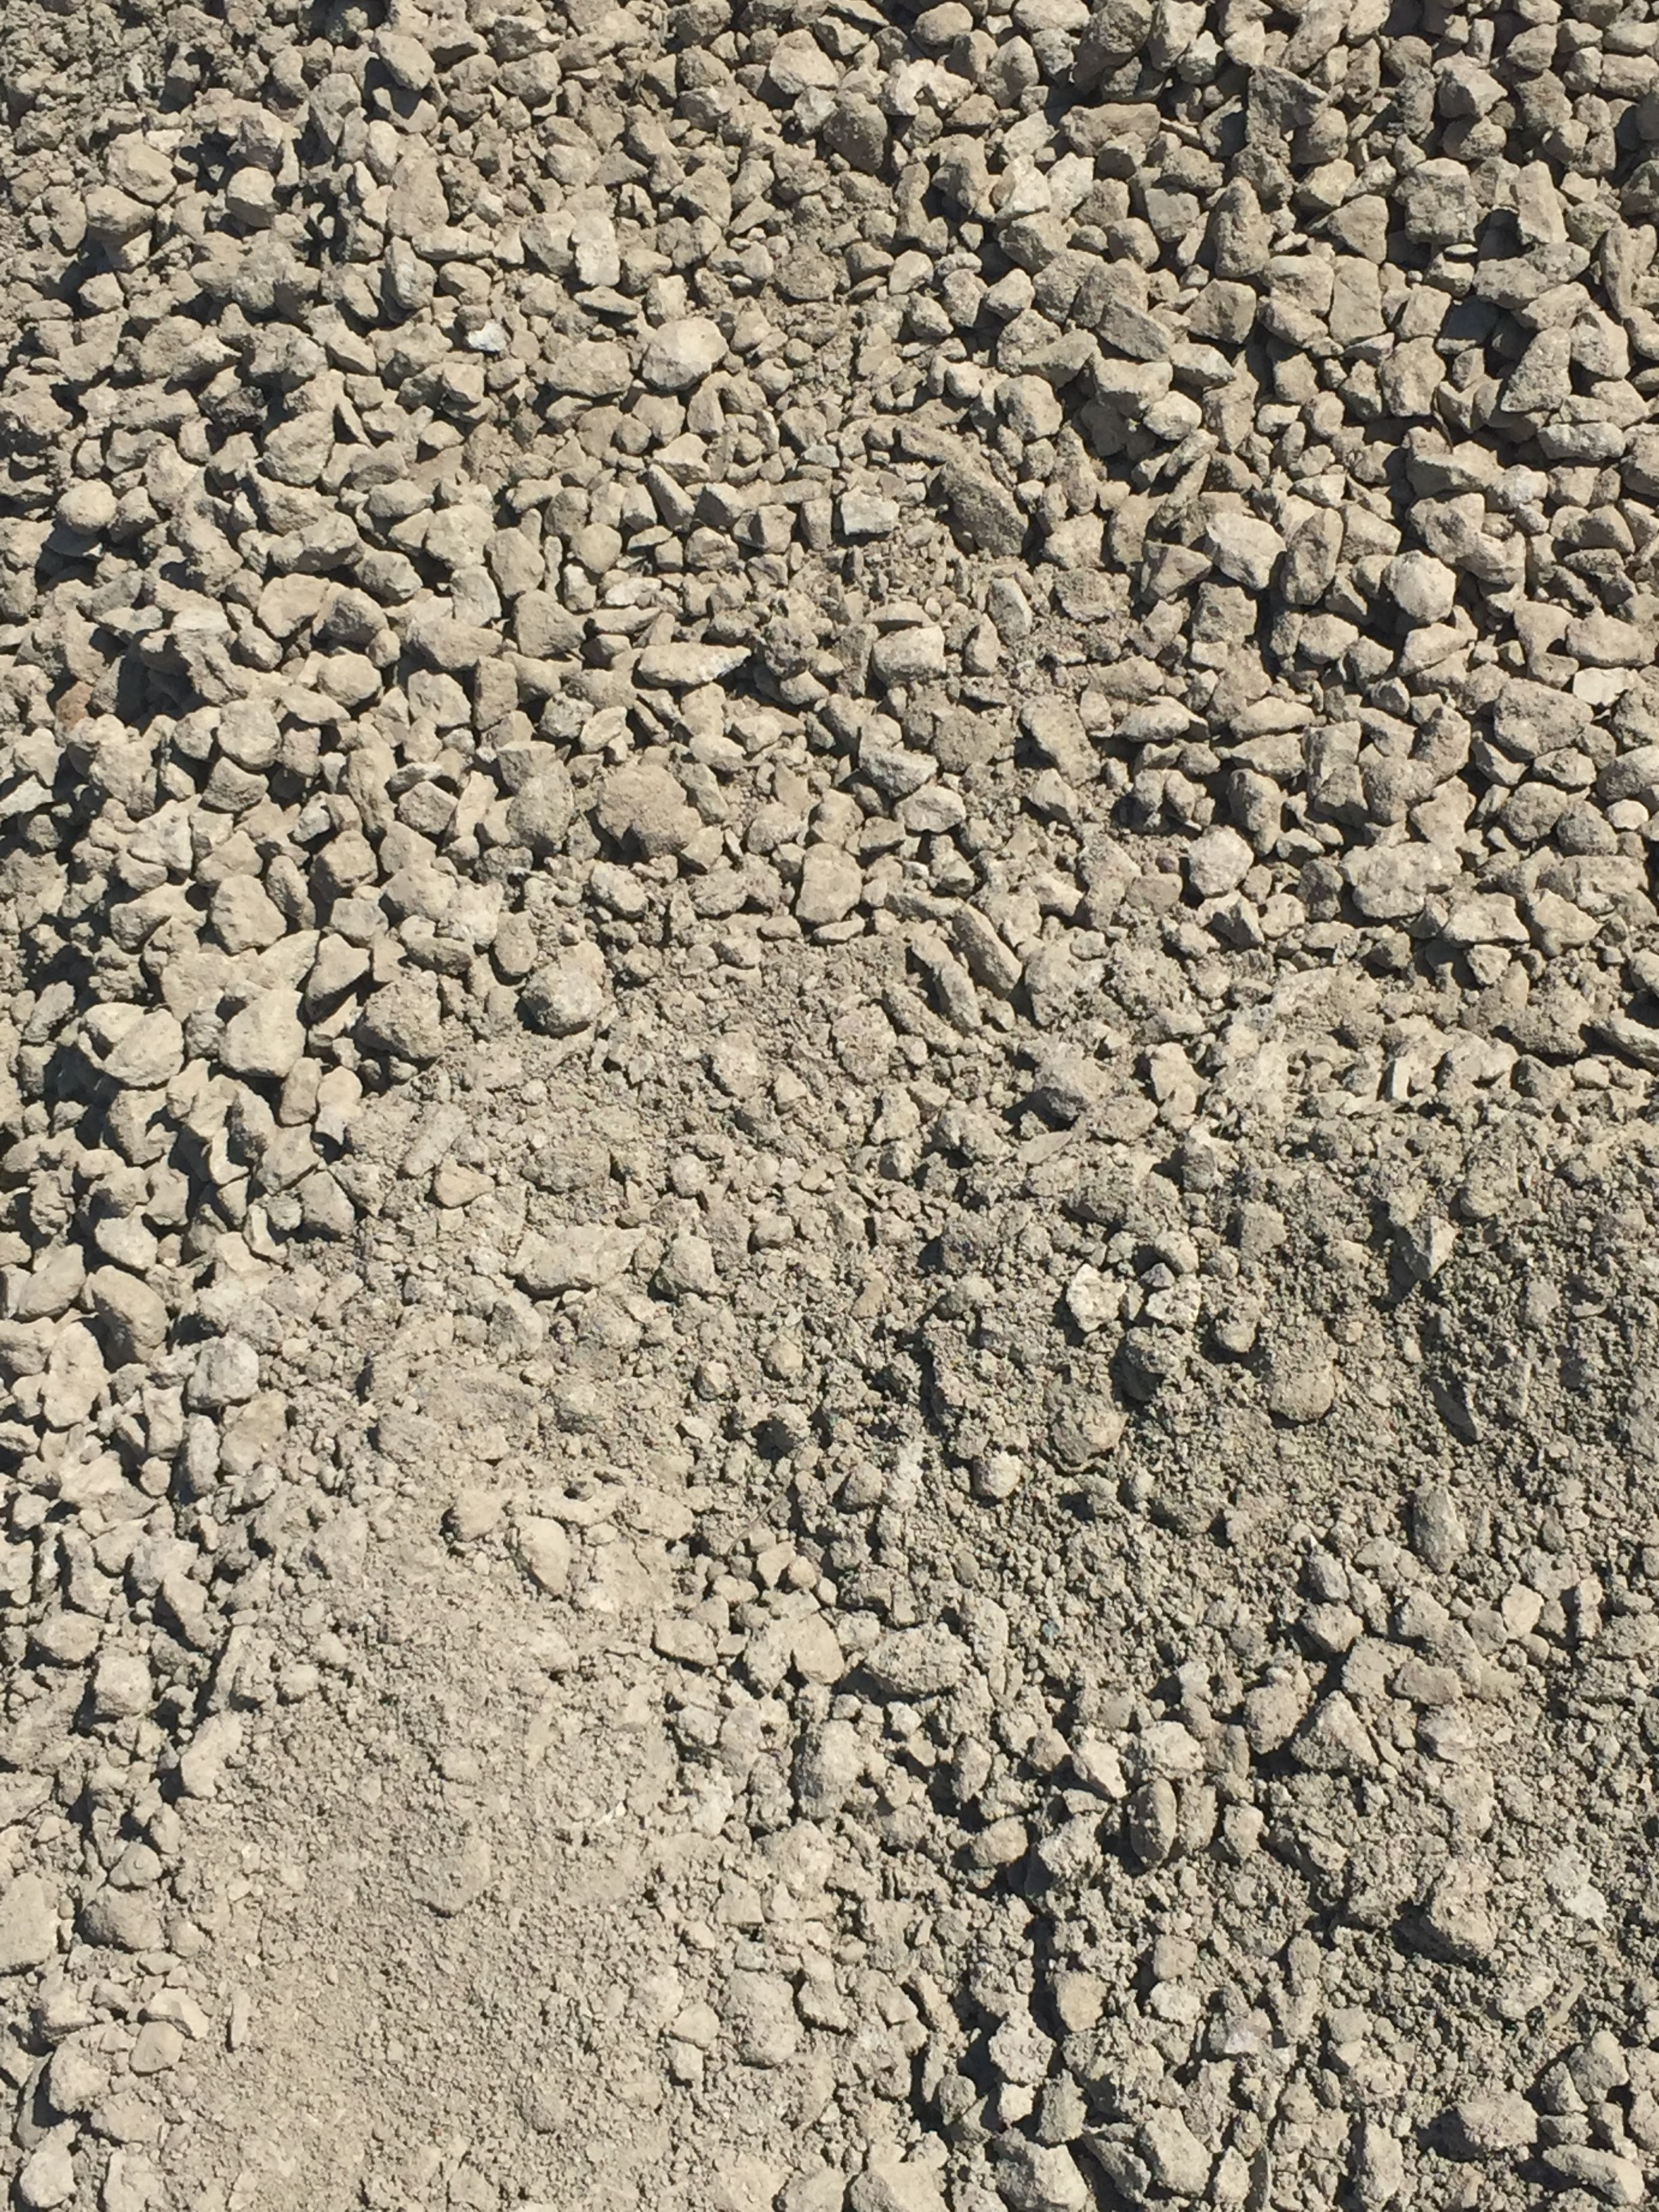 21A Crushed Concrete Used For Base Material For Pavers And Concrete